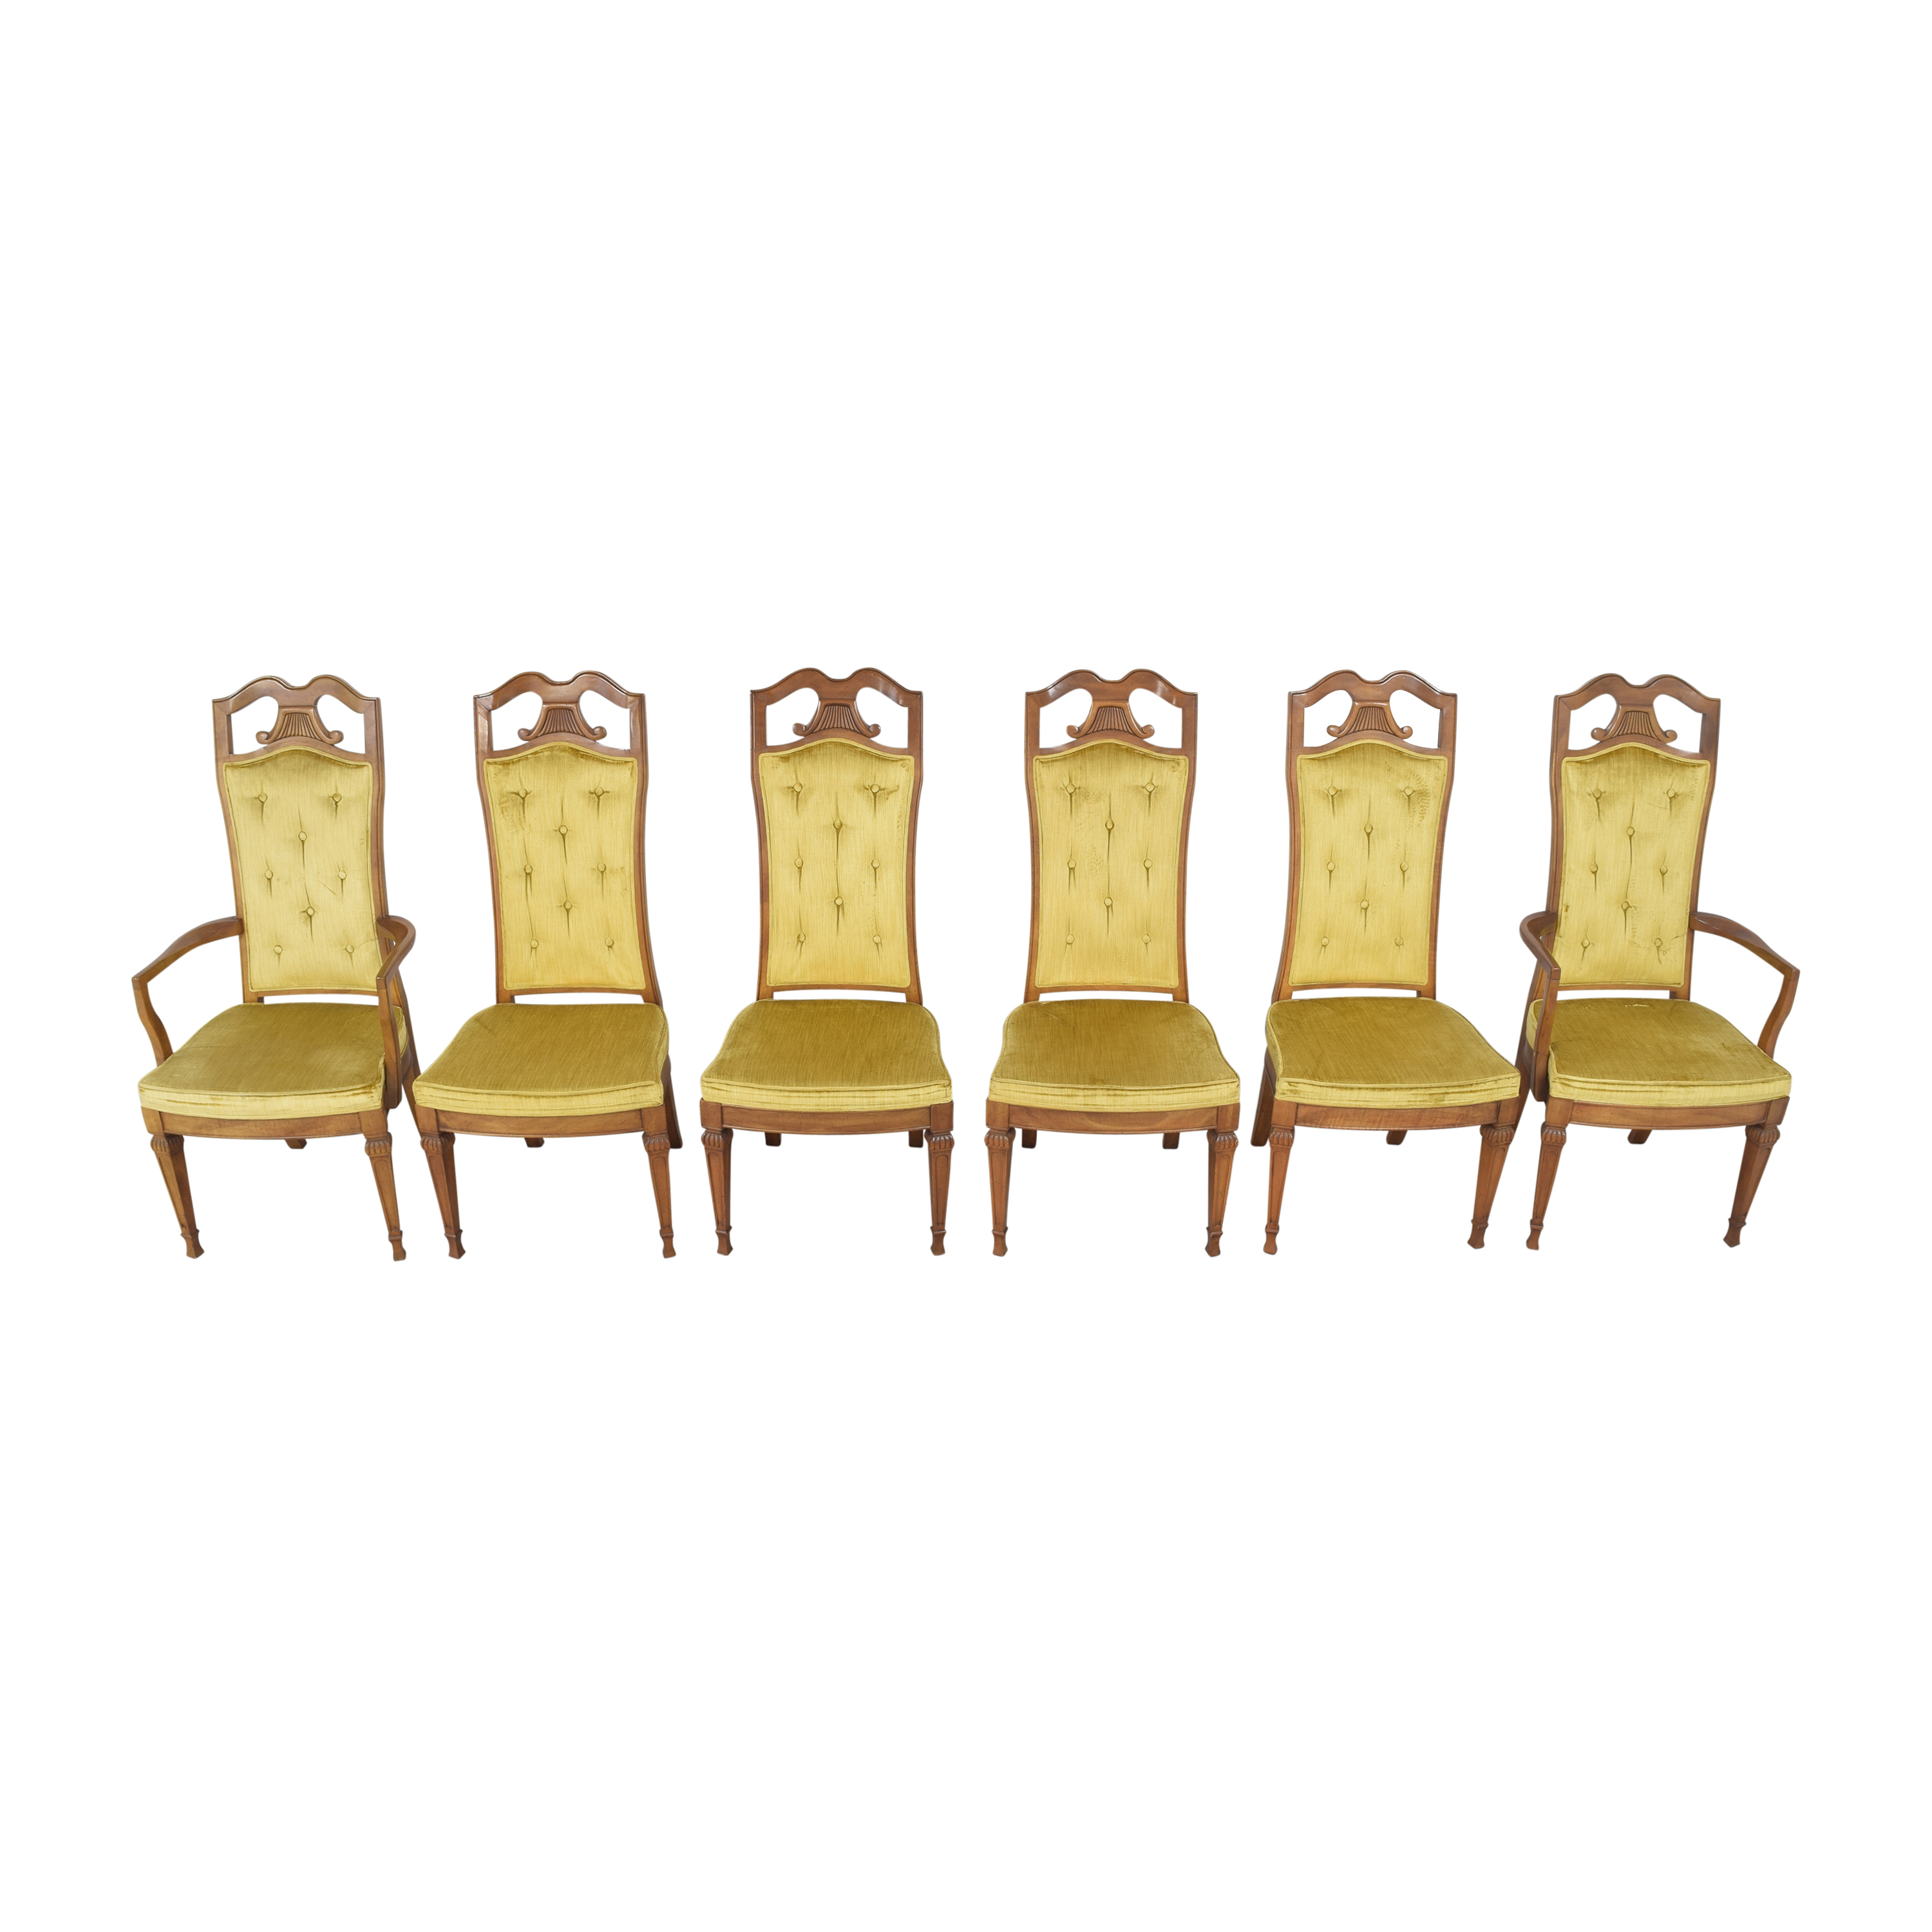 buy Detroit Furniture Distributing Co. Upholstered Dining Chairs Detroit Furniture Distributing Co. Dining Chairs